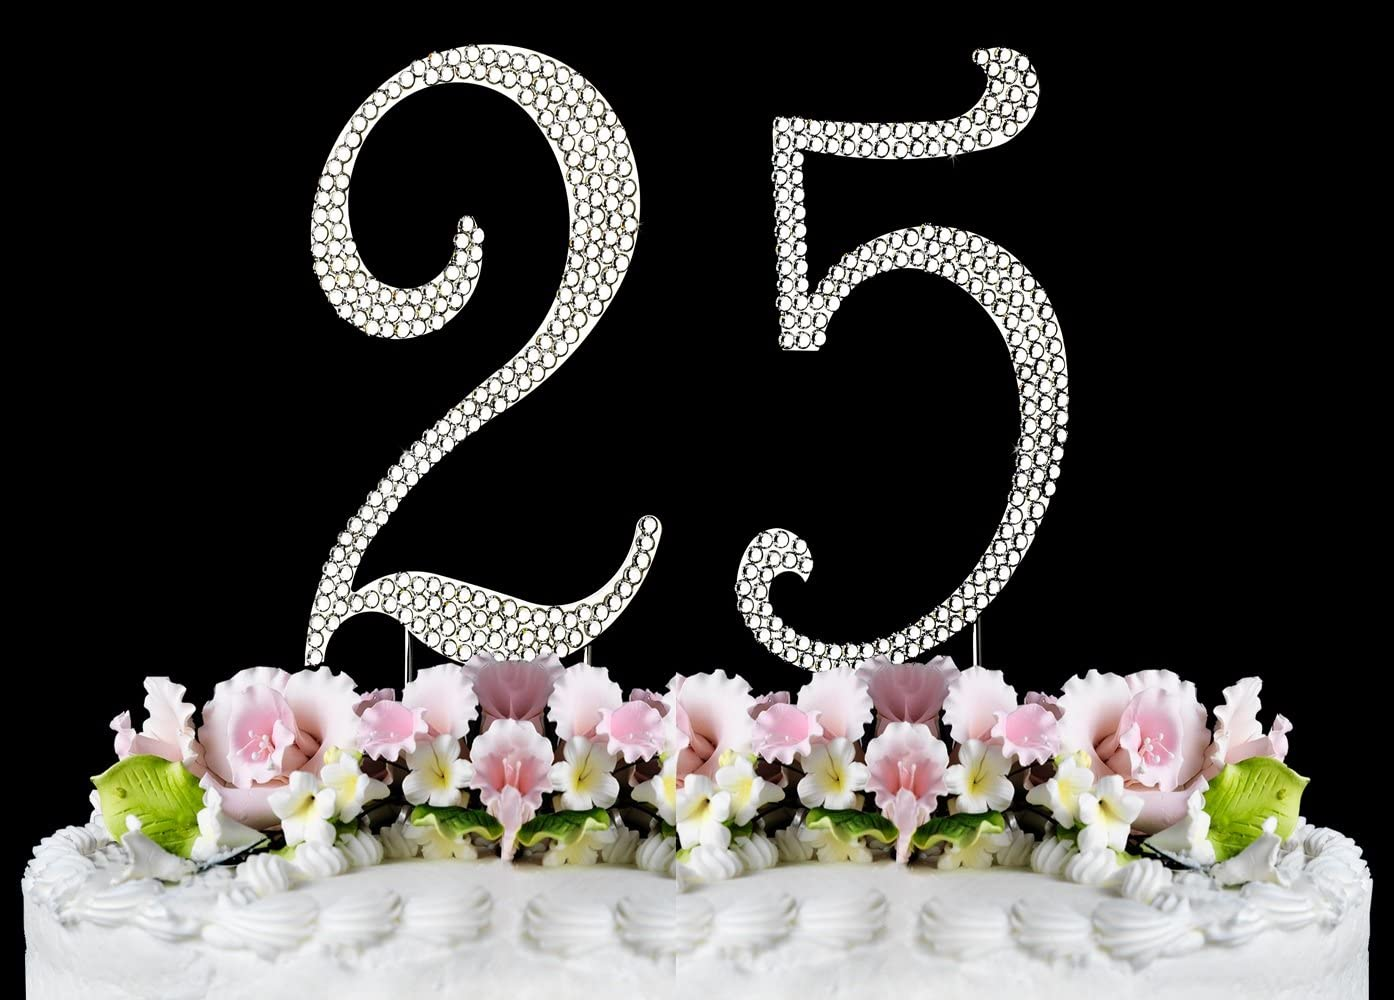 Rhinestone Cake Topper Number 25 by other